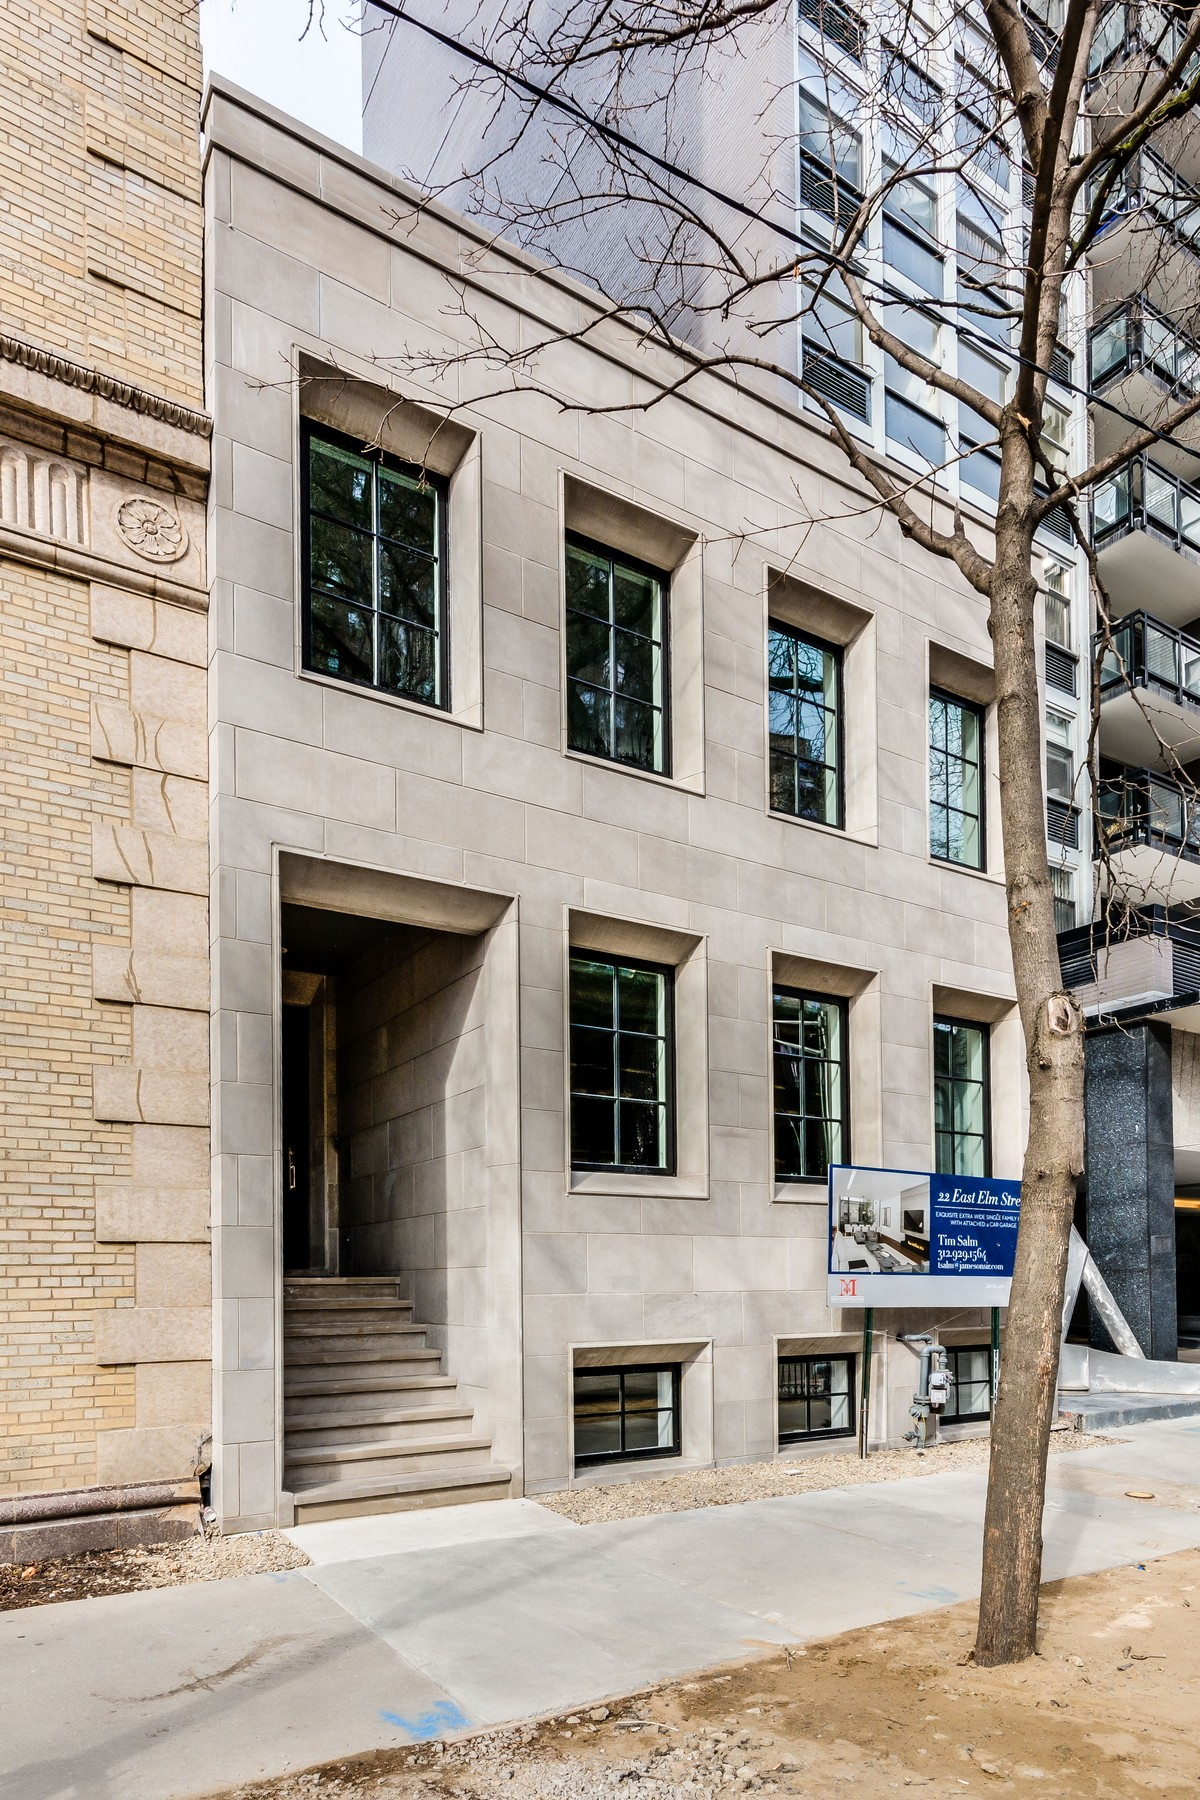 Single Family Home for Sale at Lavish New Construction in a Historic Area 22 E Elm Street, Near North Side, Chicago, Illinois, 60611 United States